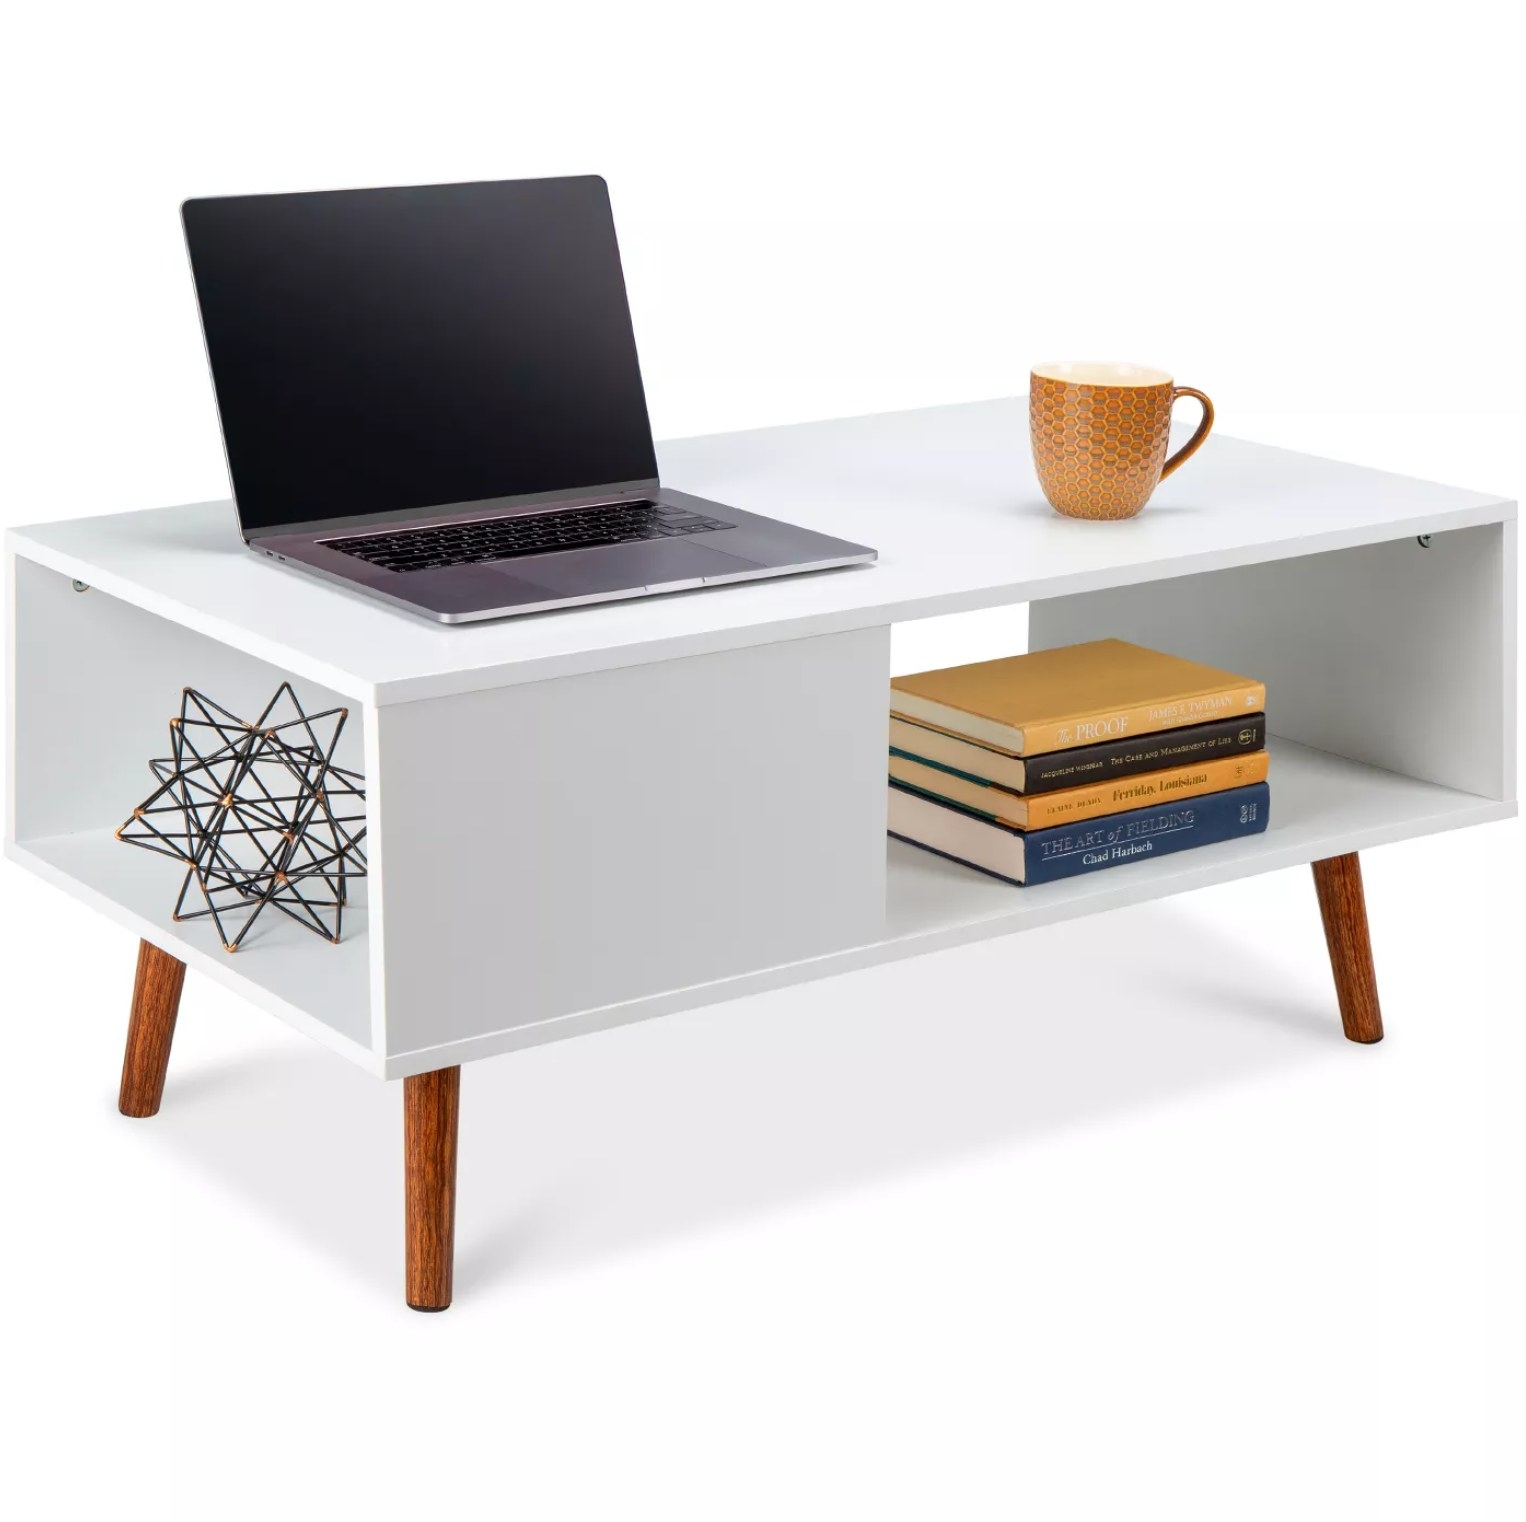 The white accent table with books, a laptop, and other decorations